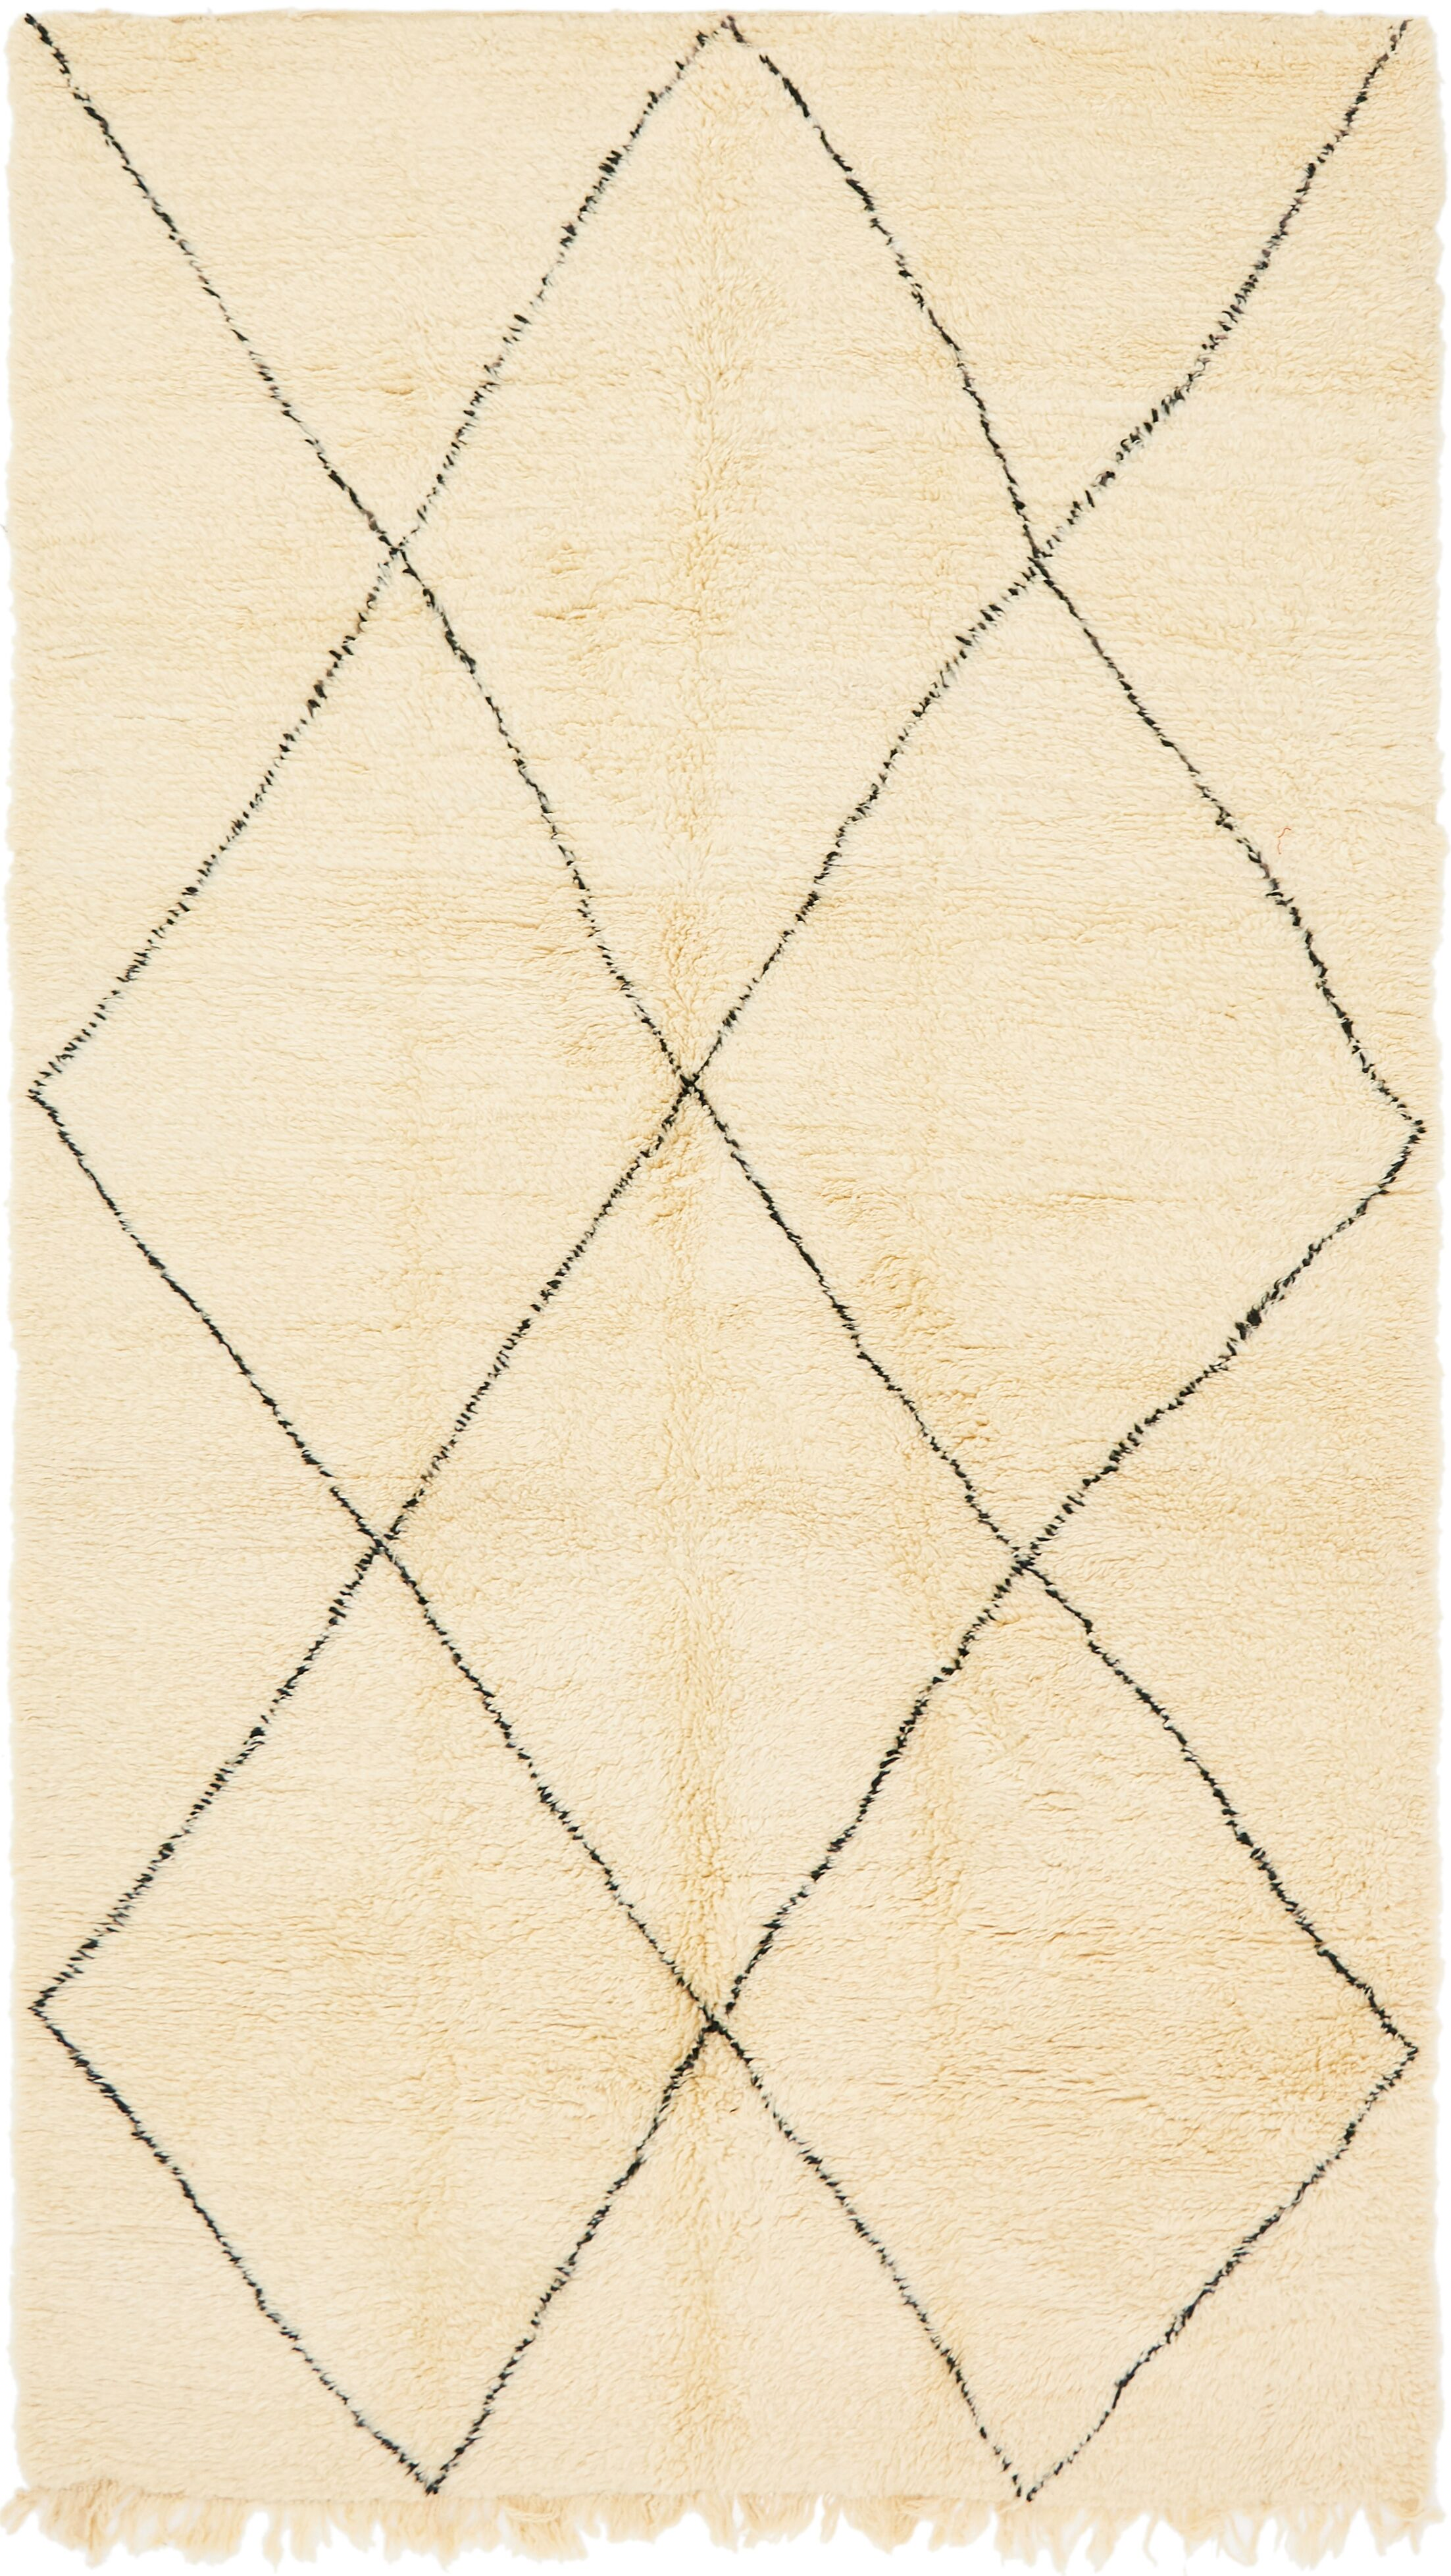 One-of-a-Kind Lutterworth Hand-Knotted Wool Beige Area Rug